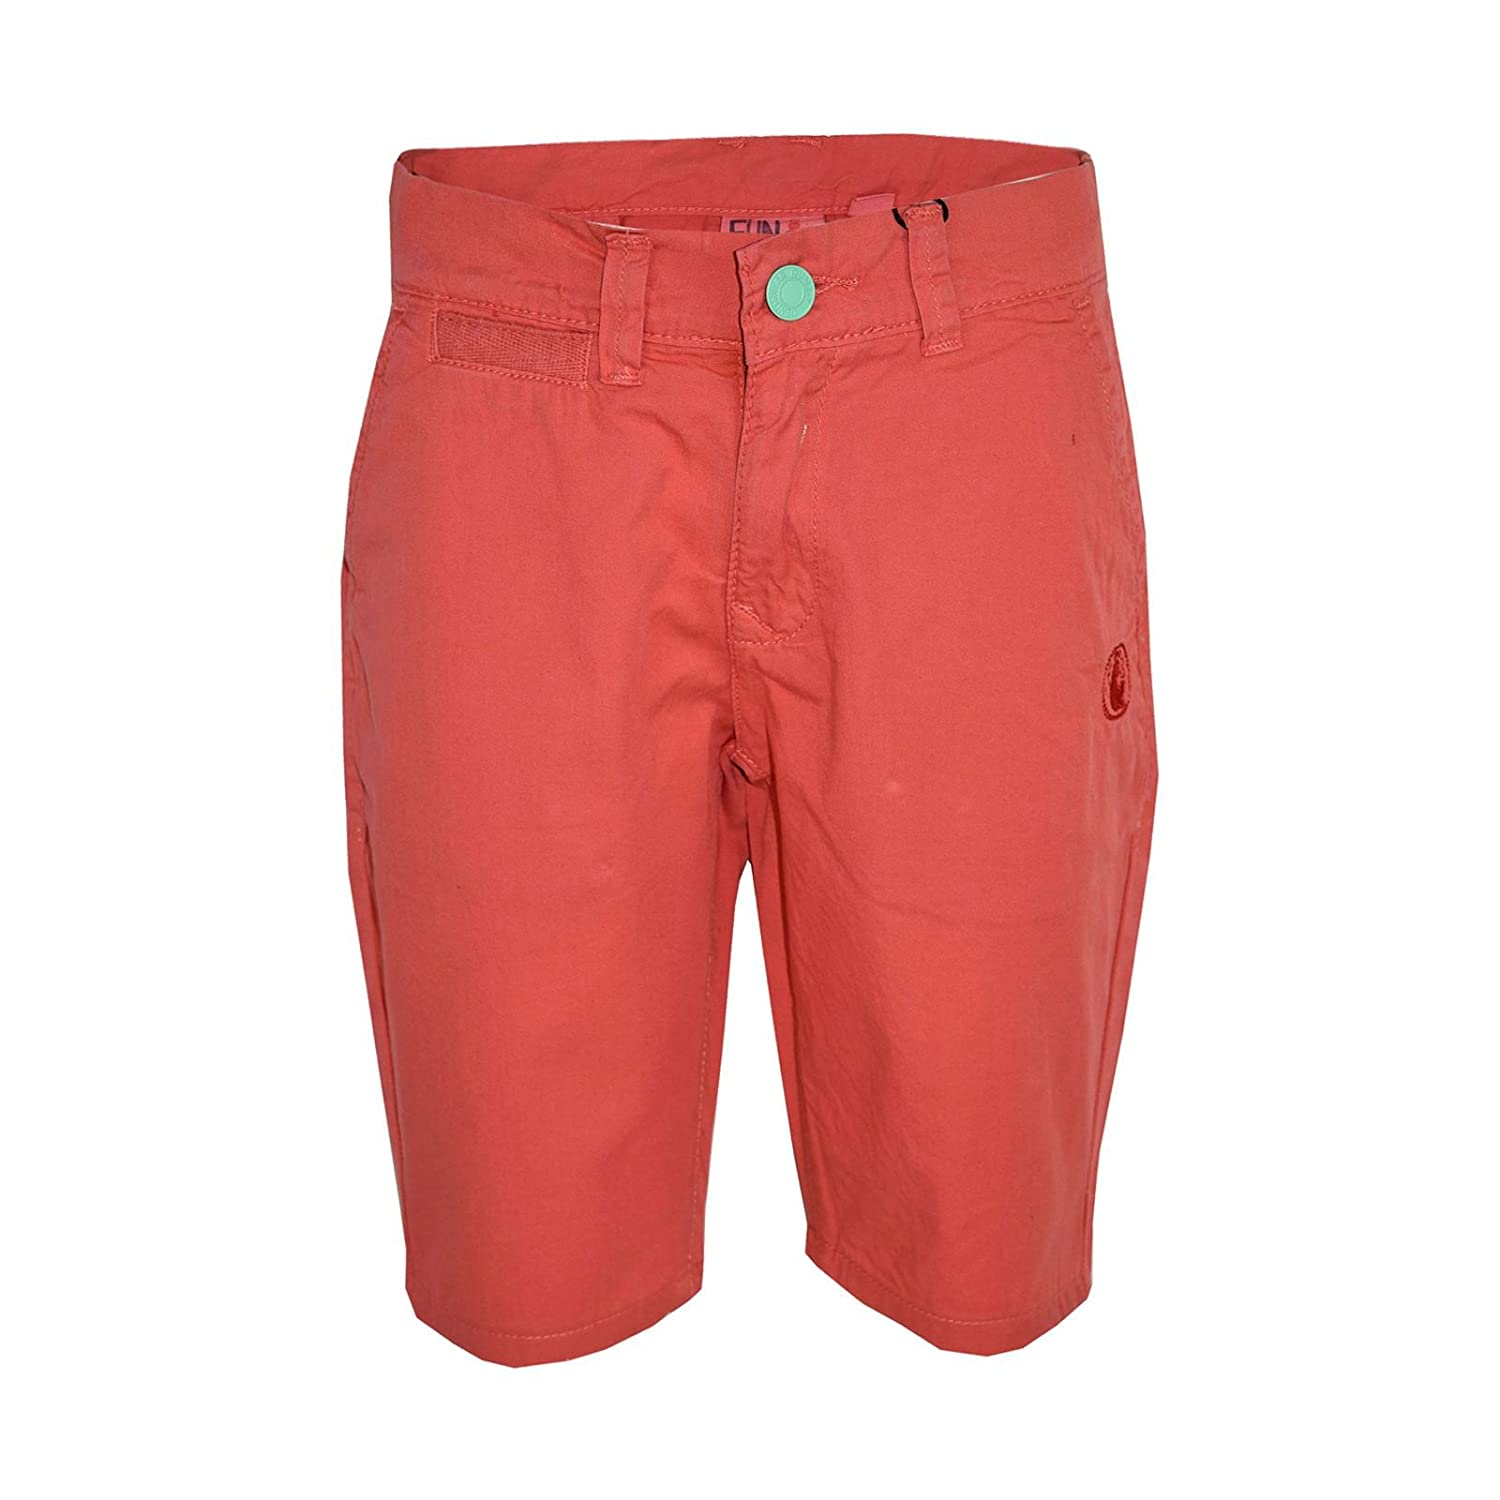 Boys Short Kids Orange Chino Shorts Summer Knee Length Half Pant Age 2-13 Yr